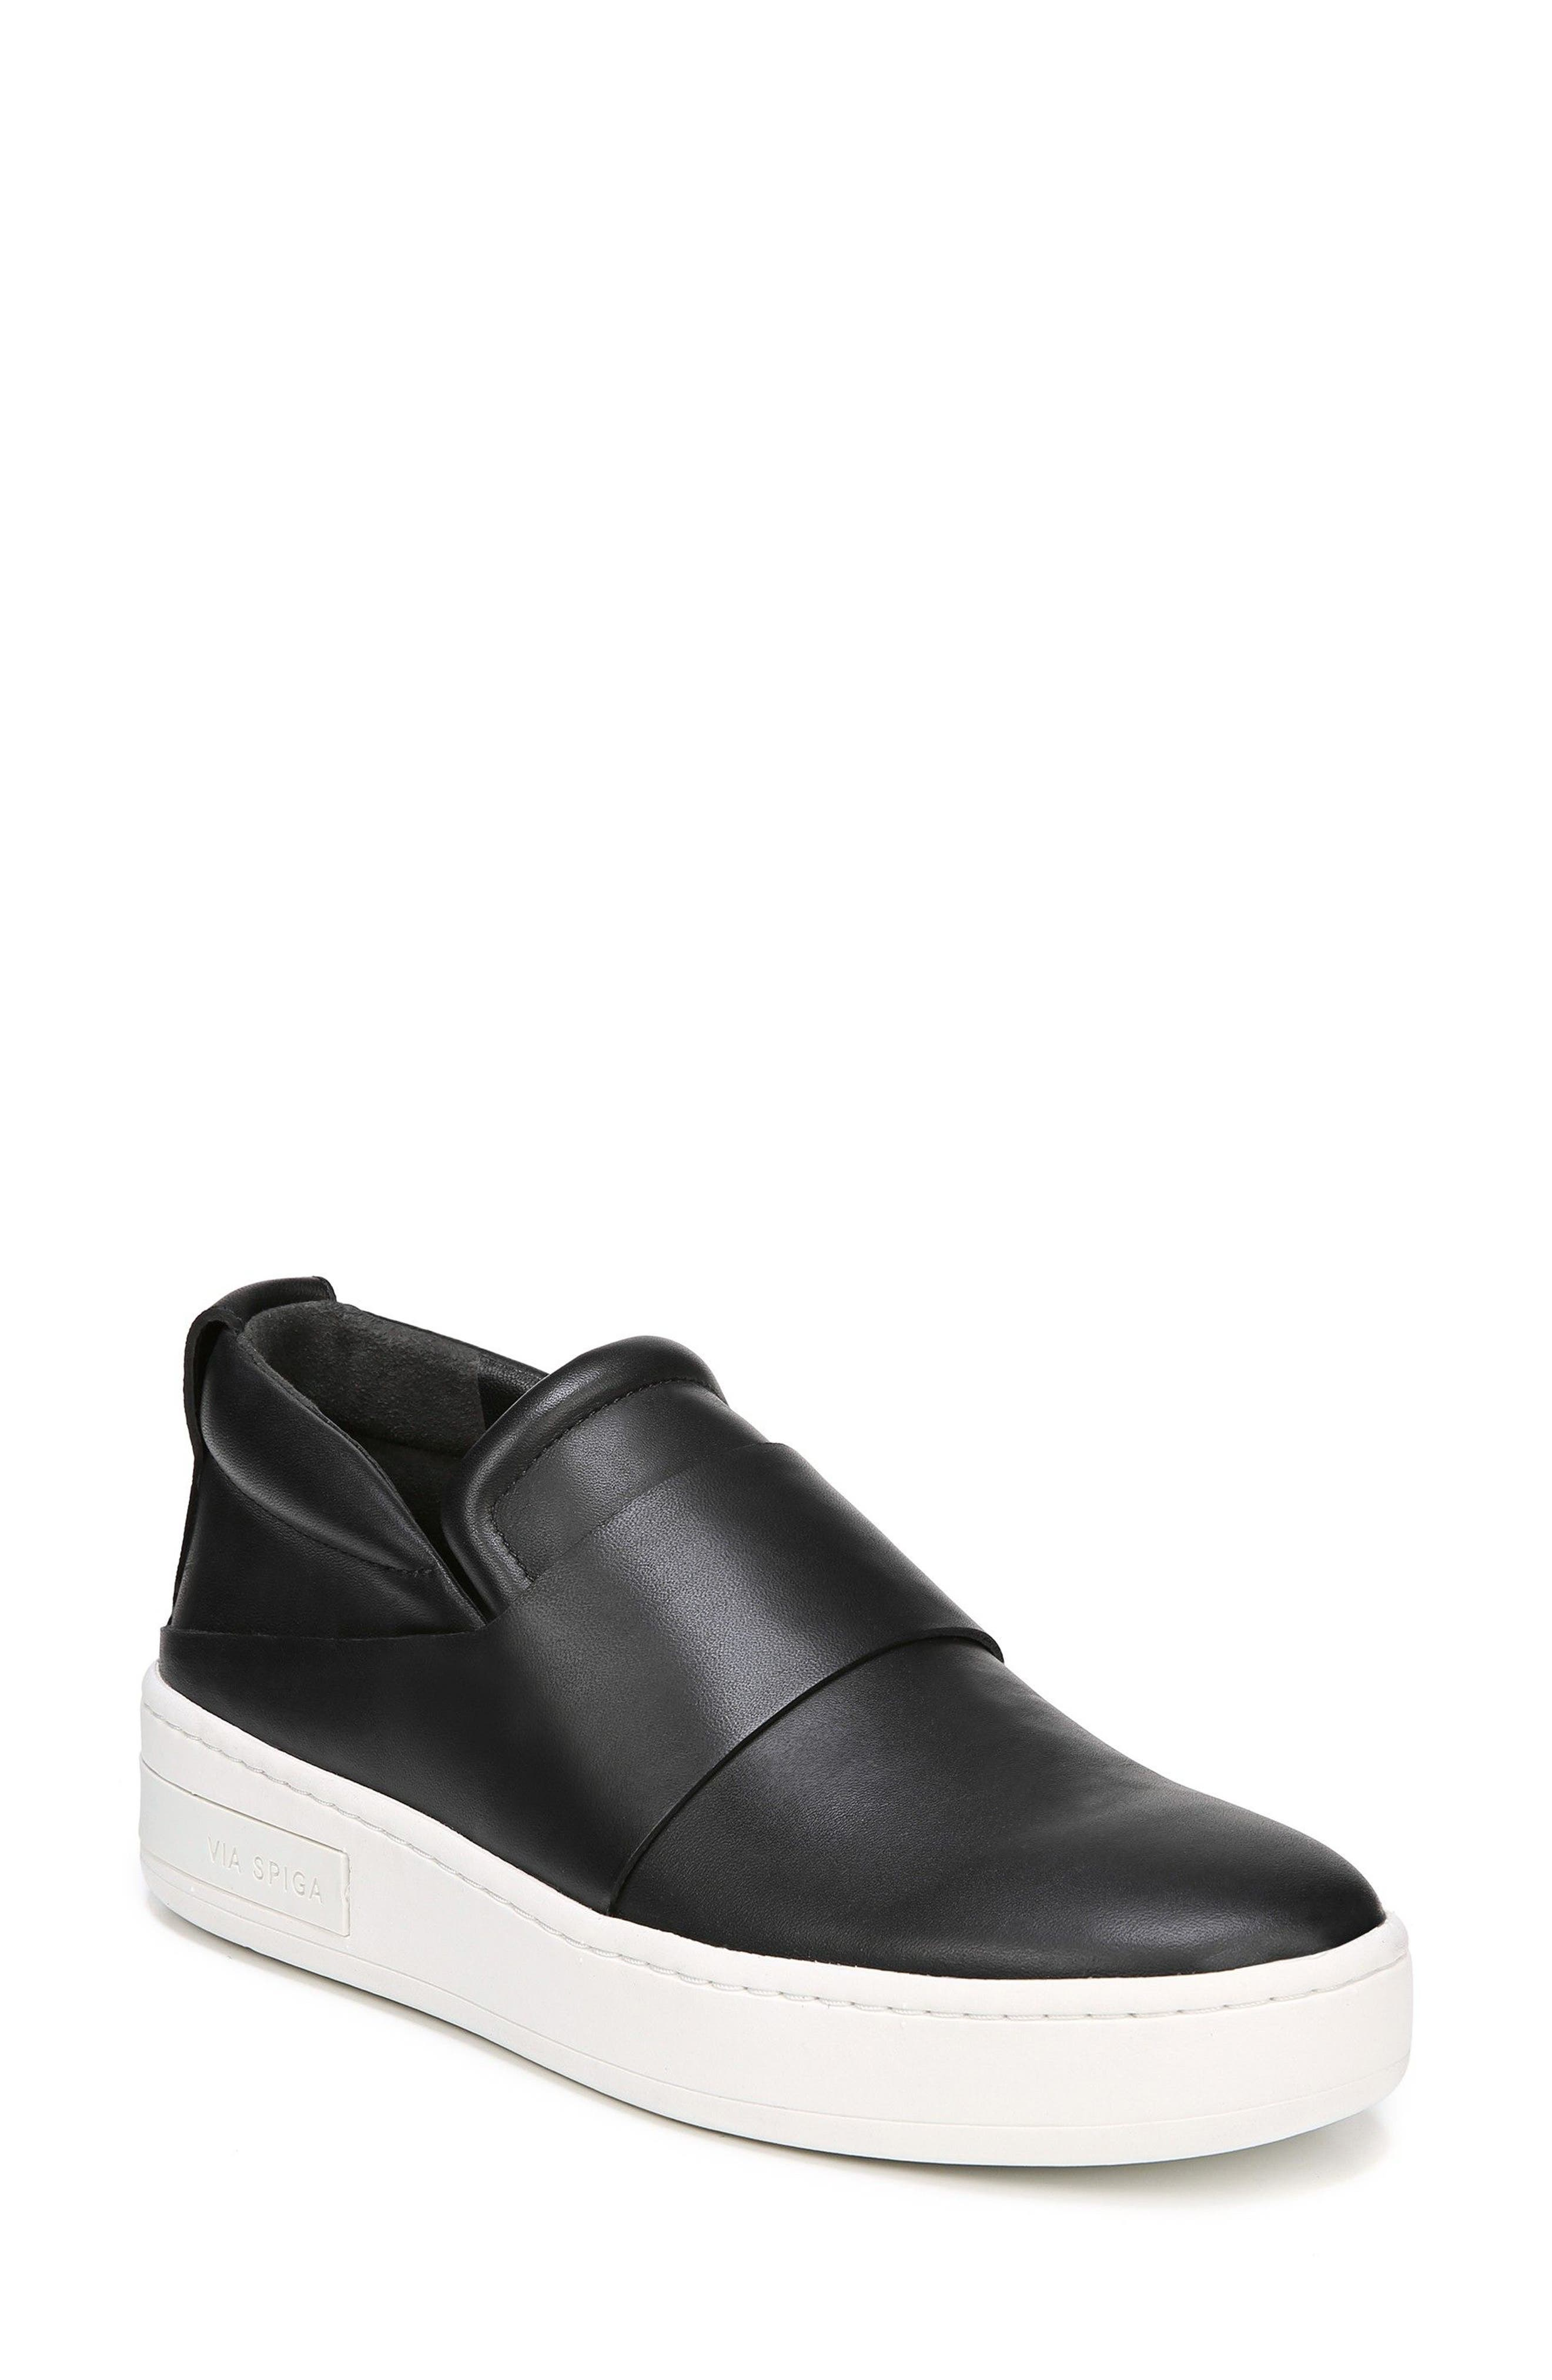 Ryder Slip-On Sneaker,                             Main thumbnail 1, color,                             BLACK LEATHER